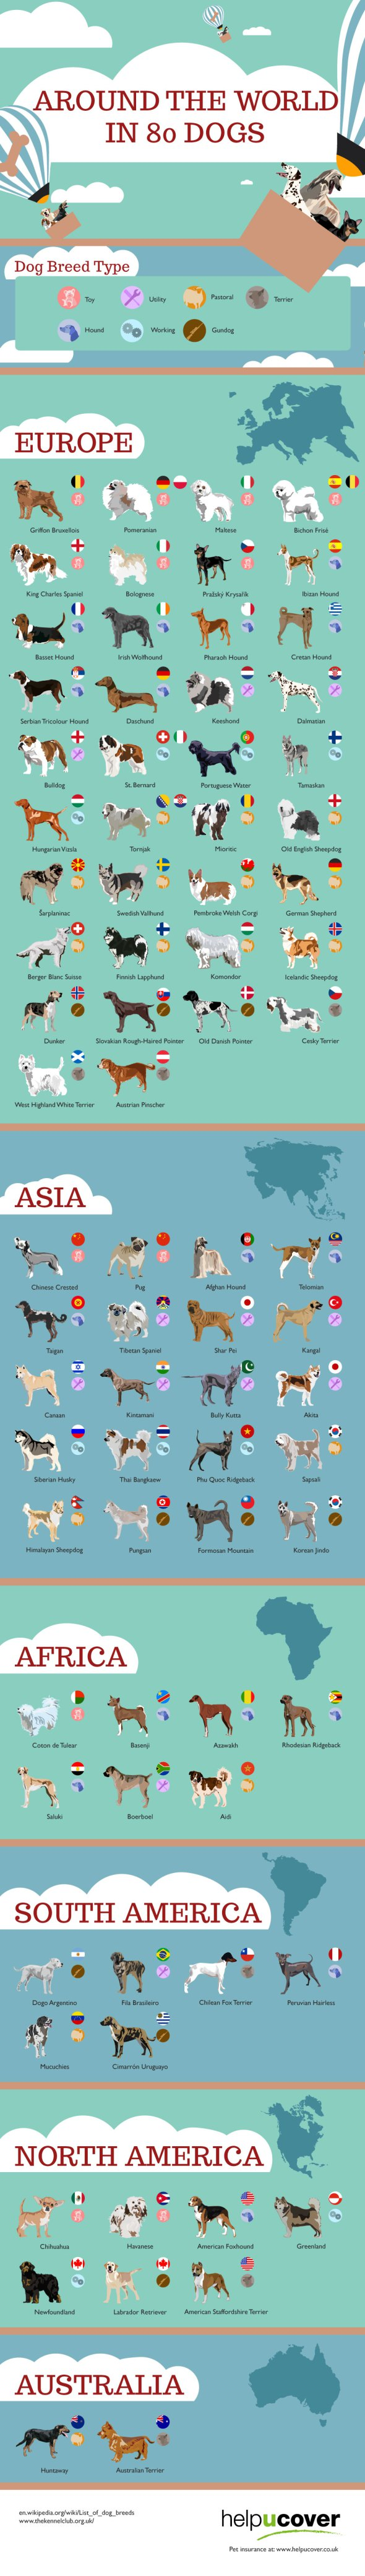 Infographic Around the world in 80 dogs